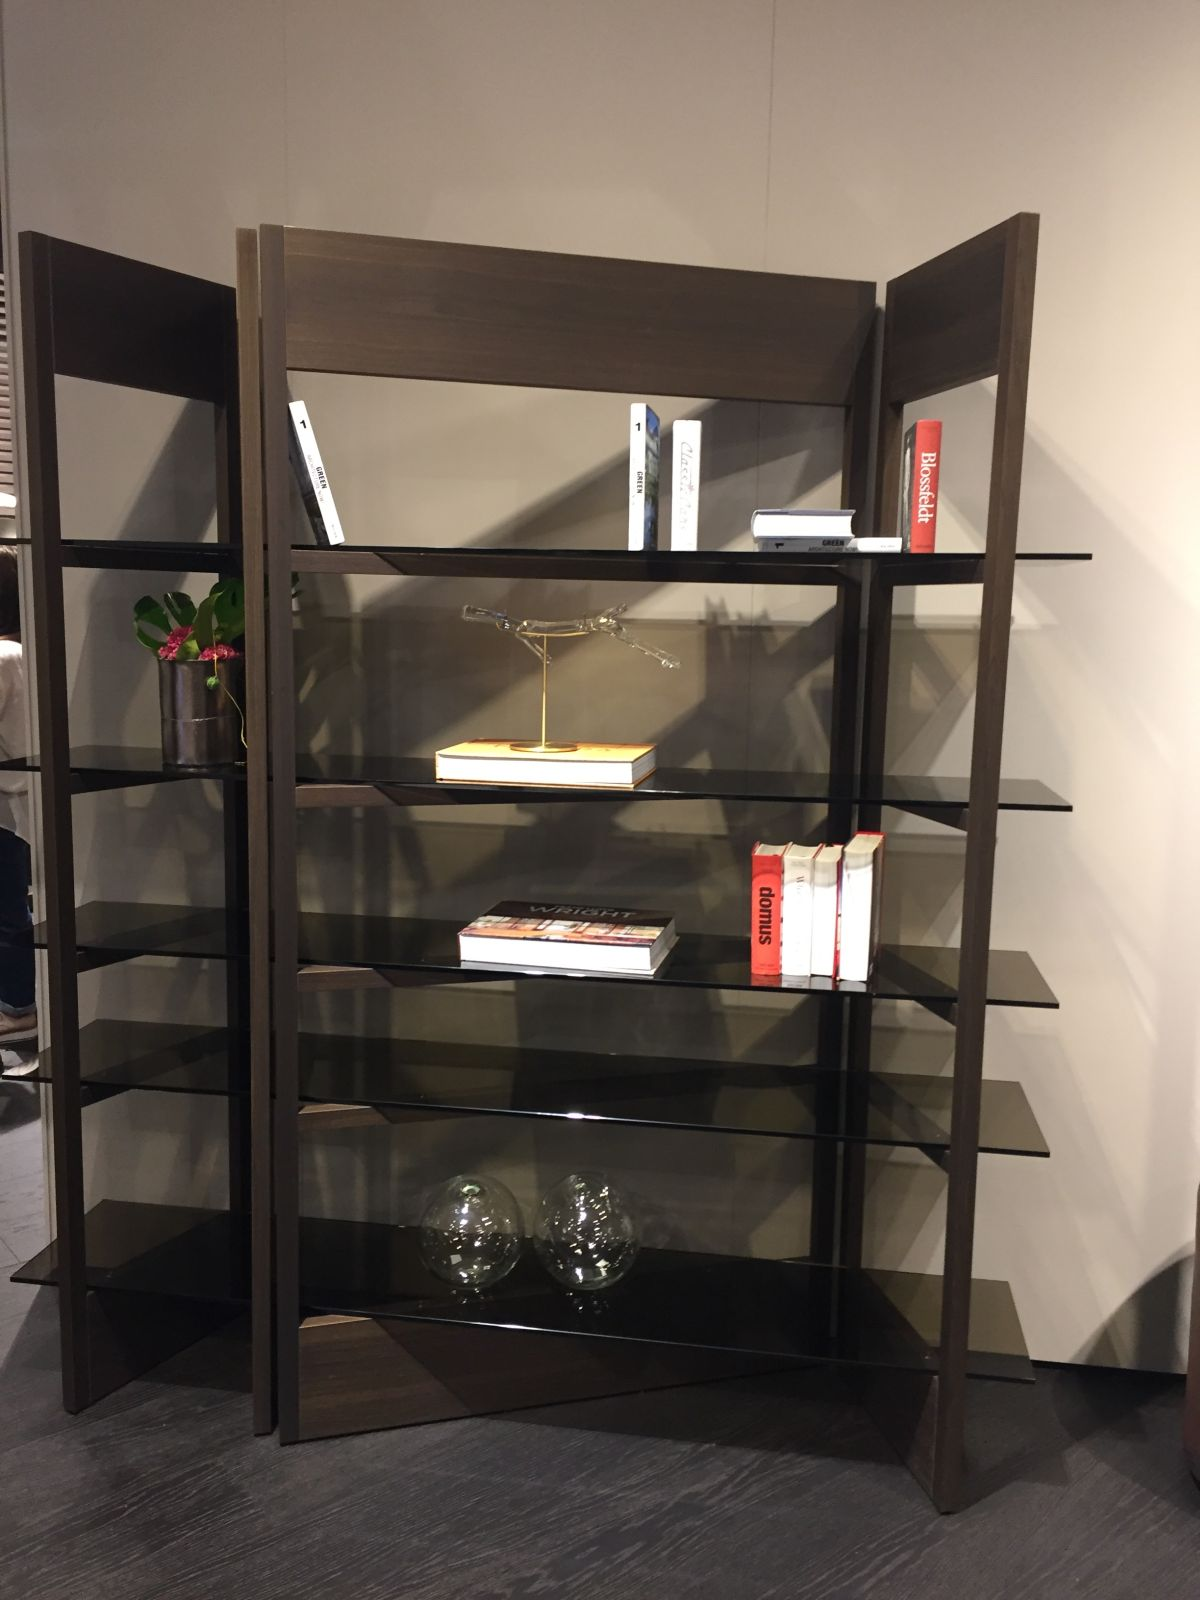 Wall unit with an unusual angle